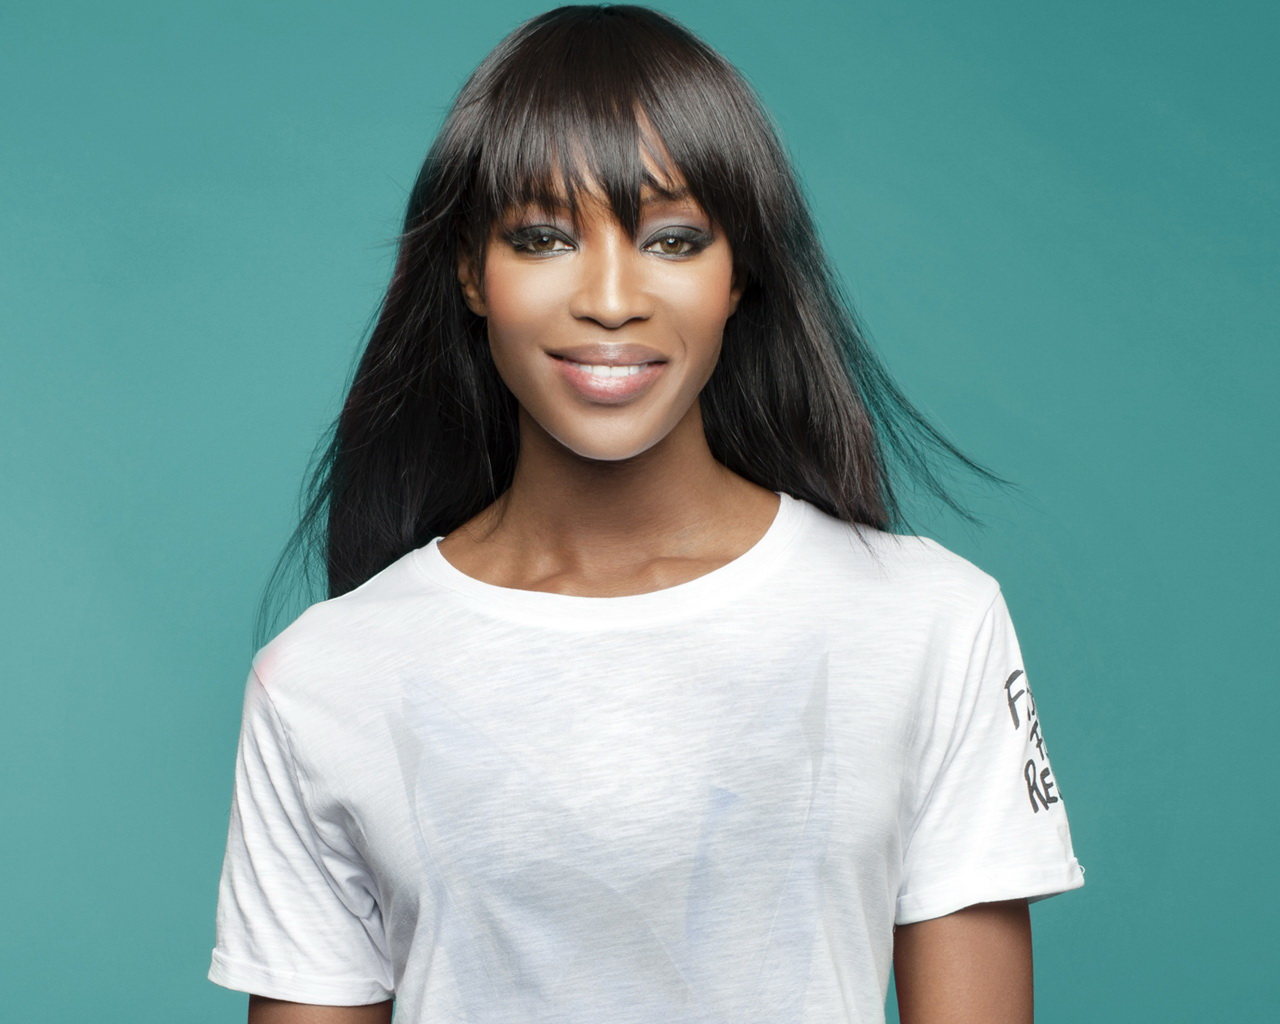 On an episode of, The Meredith Vieira Show, the legendary Naomi Campbell stopped by to dish the scoop on her latest projects and to share her thoughts on ...